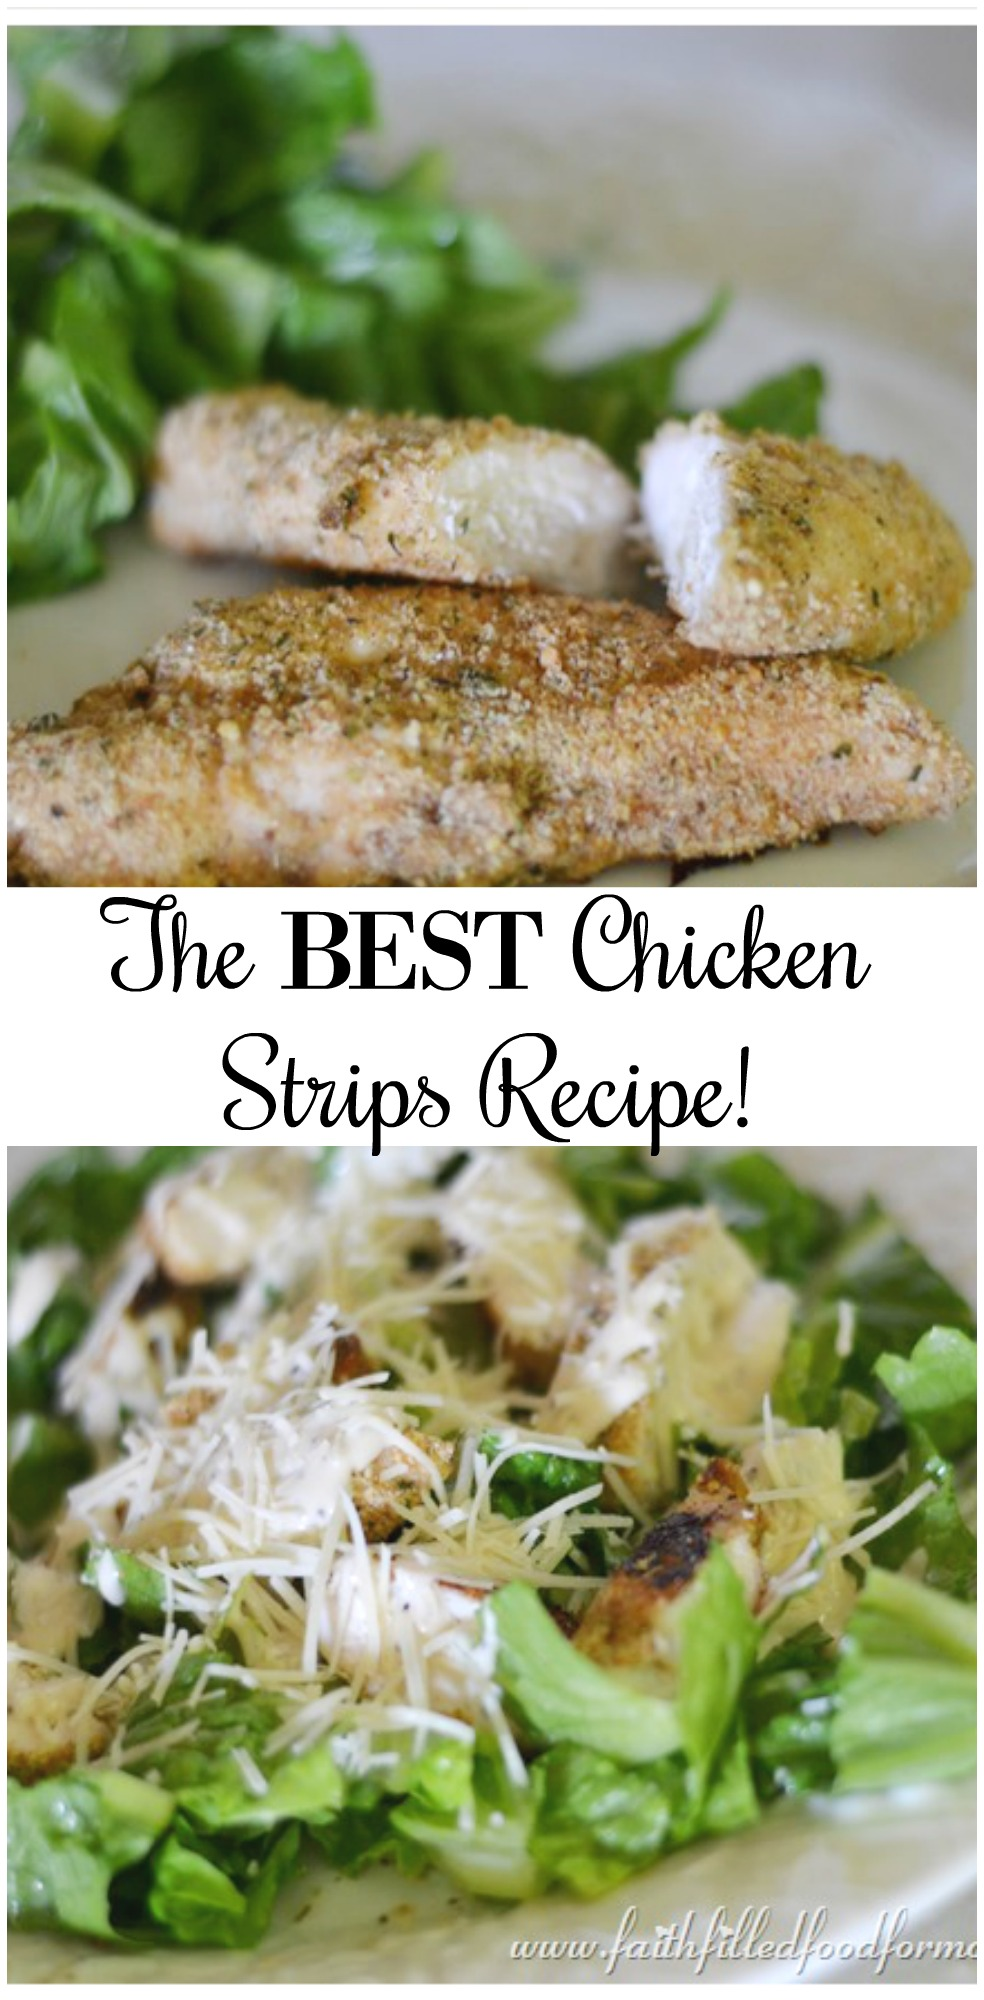 This is simply the BEST and easy homemade baked chicken strips recipe and can be changed up in so many ways! Much more healthy than store bought. Cut the pieces of chicken breast smaller and they become the best chicken nuggets recipe! #chicken #nuggets #strips